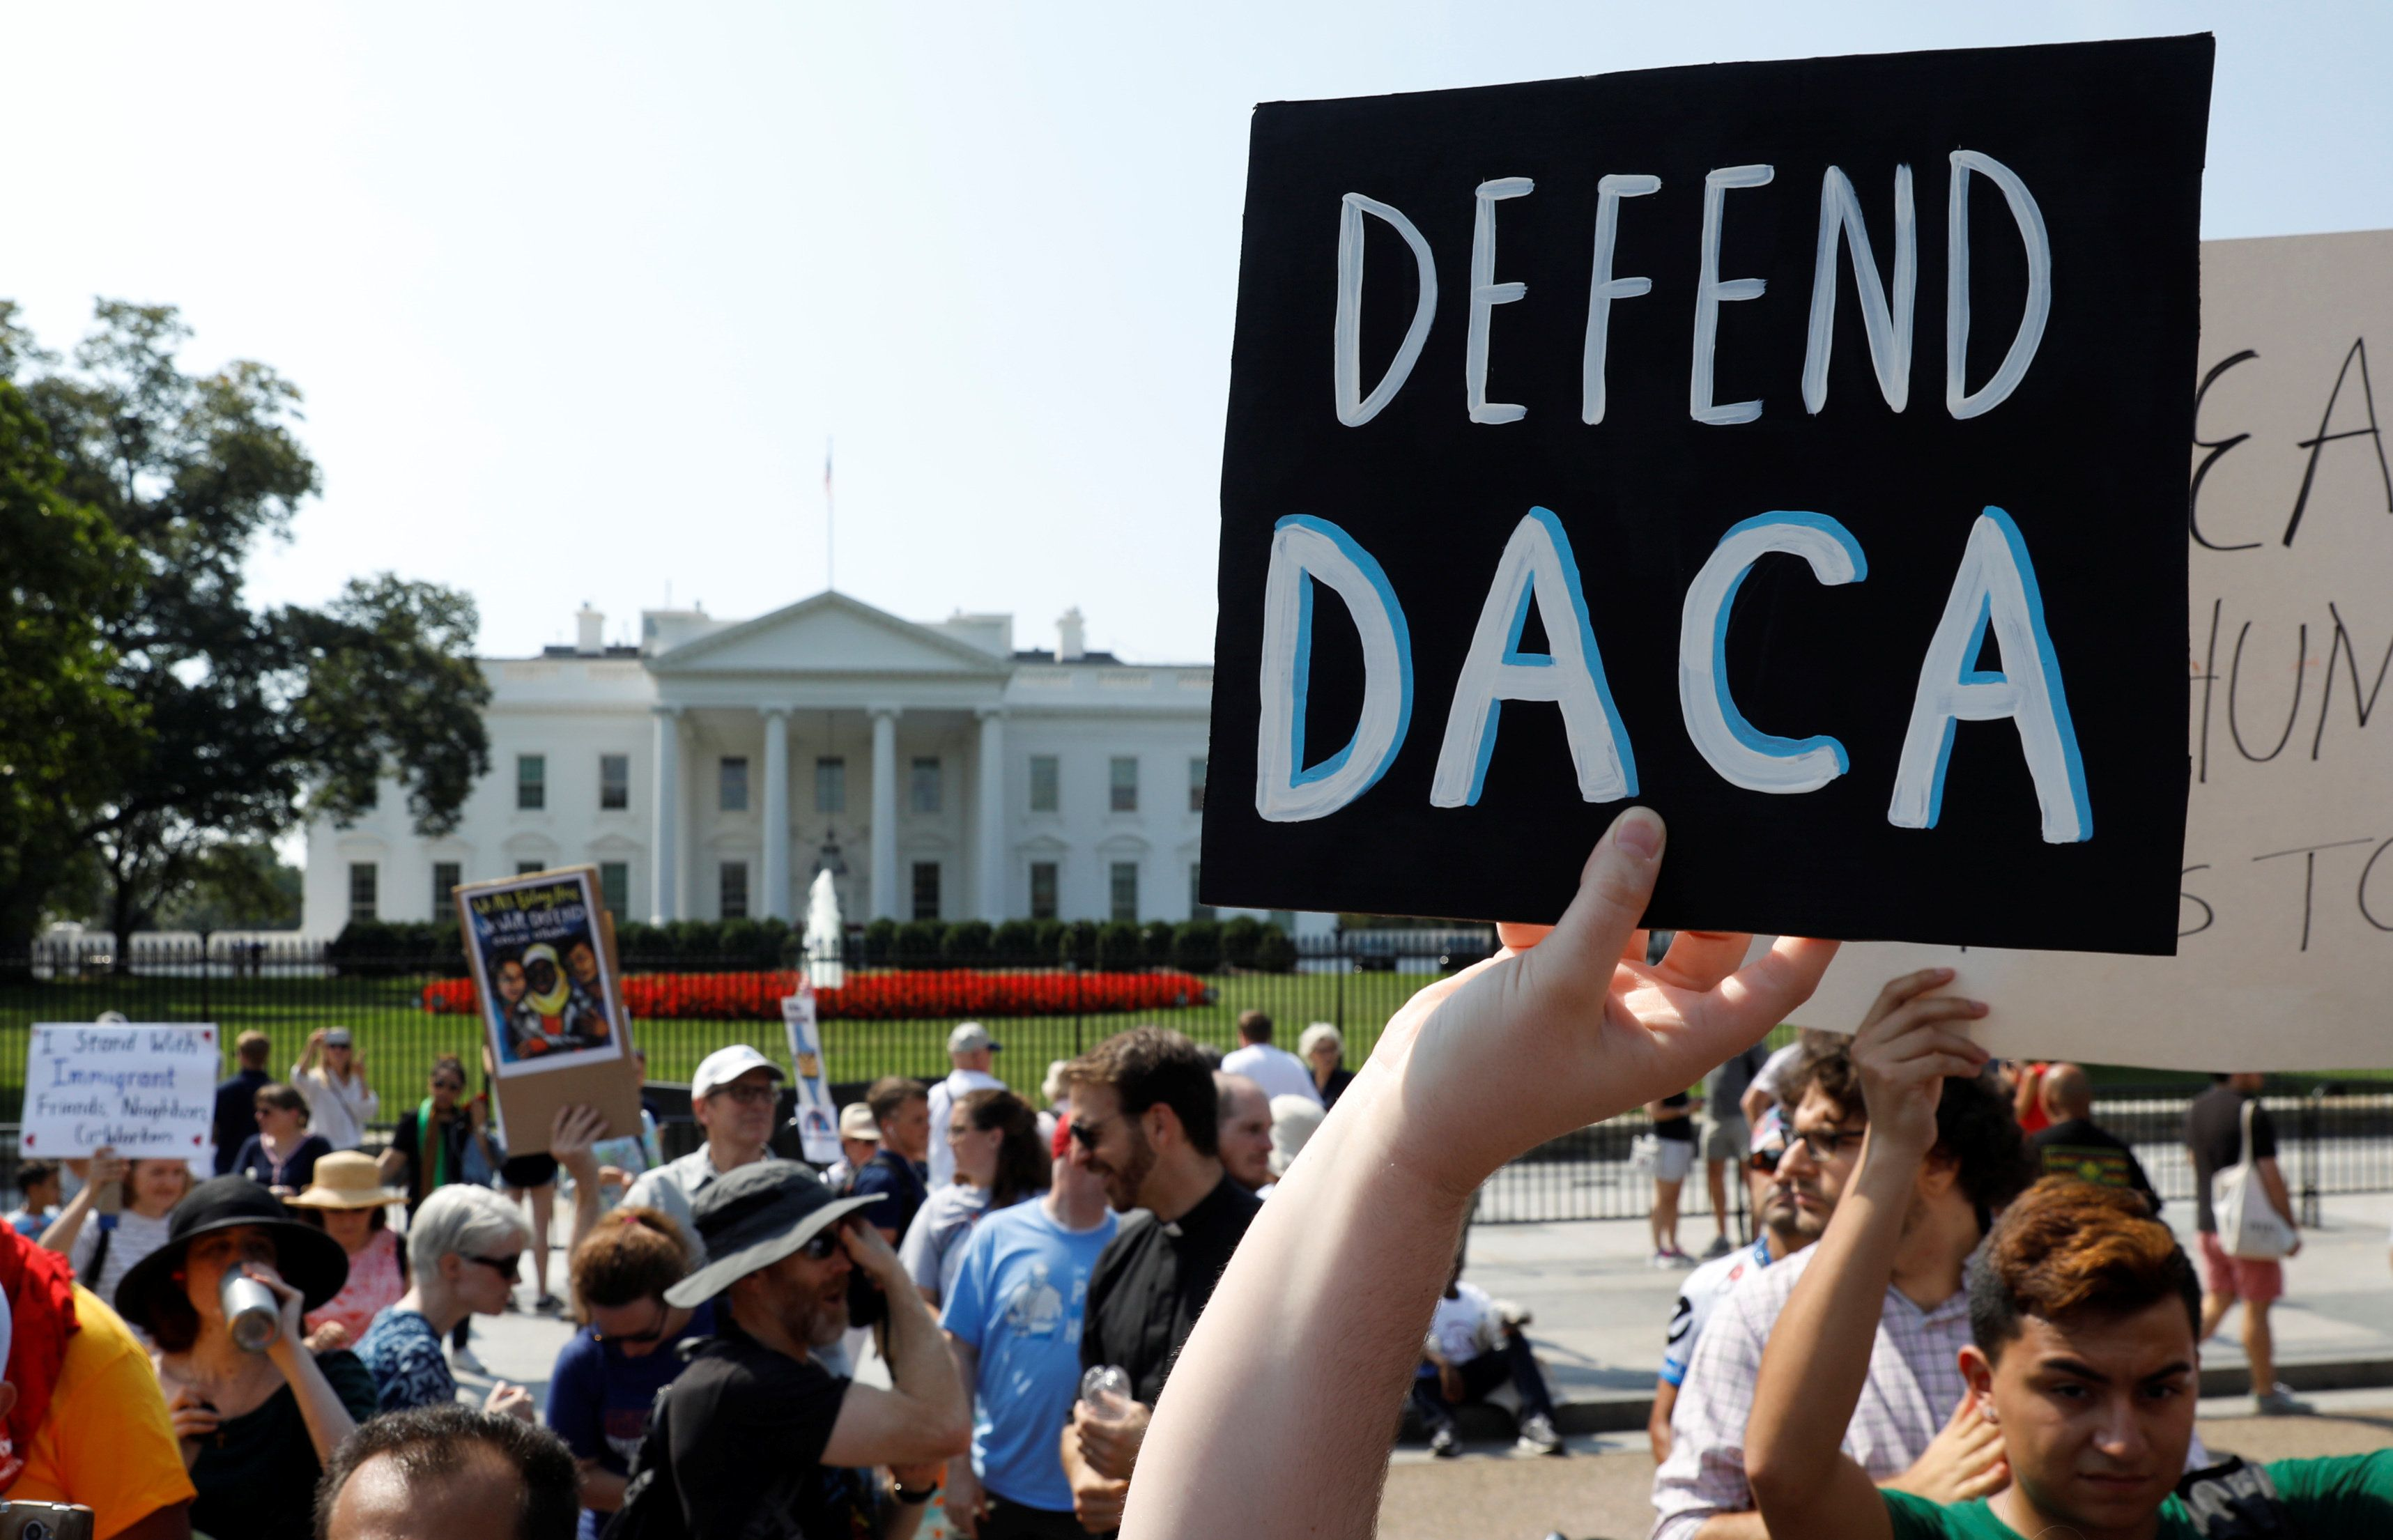 Demonstrators protest in front of the White House after the Trump administration today scrapped the Deferred Action for Childhood Arrivals (DACA), a program that protects from deportation almost 800,000 young men and women who were brought into the U.S. illegally as children, in Washington, U.S., September 5, 2017. REUTERS/Kevin Lamarque